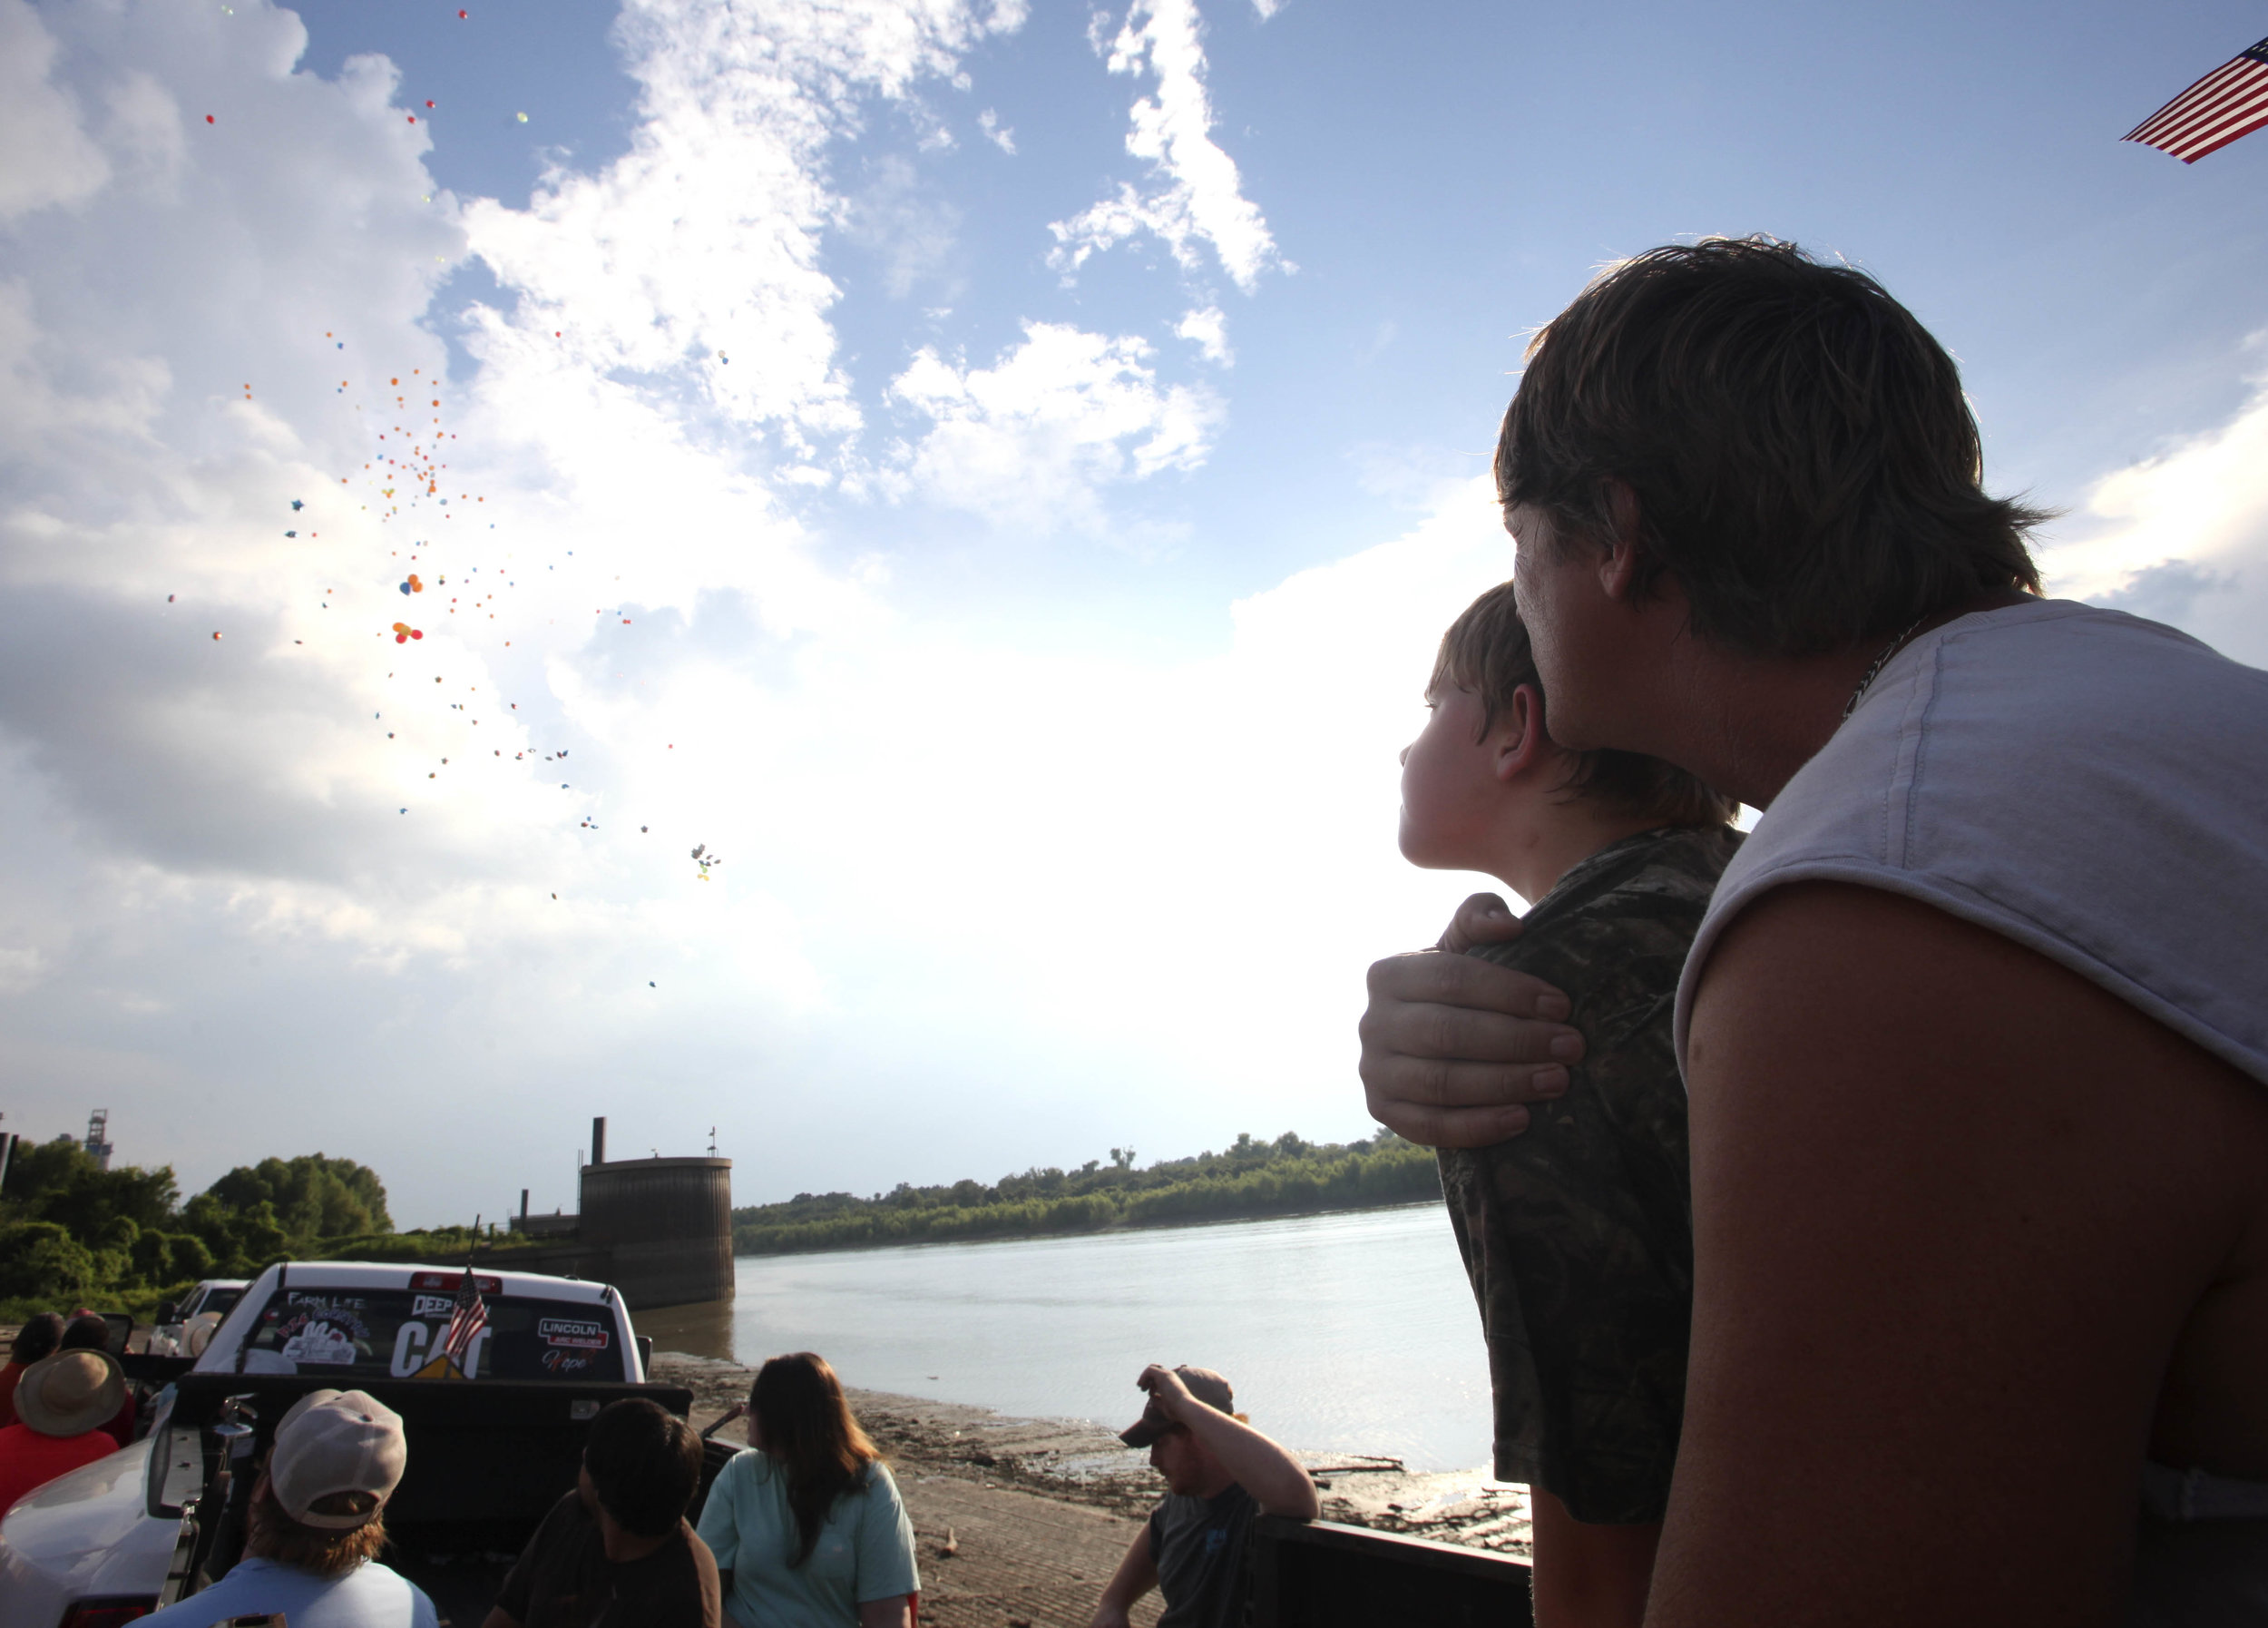 Stan Collins holds Tristan Howell, Michael's younger brother, as balloons float upward  during the balloon release for his son, Michael Collins who was killed when the off-road construction vehicle he was driving rolled into the Mississippi River in 2016, at the Vicksburg Riverfront Wednesday; the anniversary of his death. Collins searched the Mississippi River for 11 days and 10 nights looking for his son. (Courtland Wells/The Vicksburg Post)